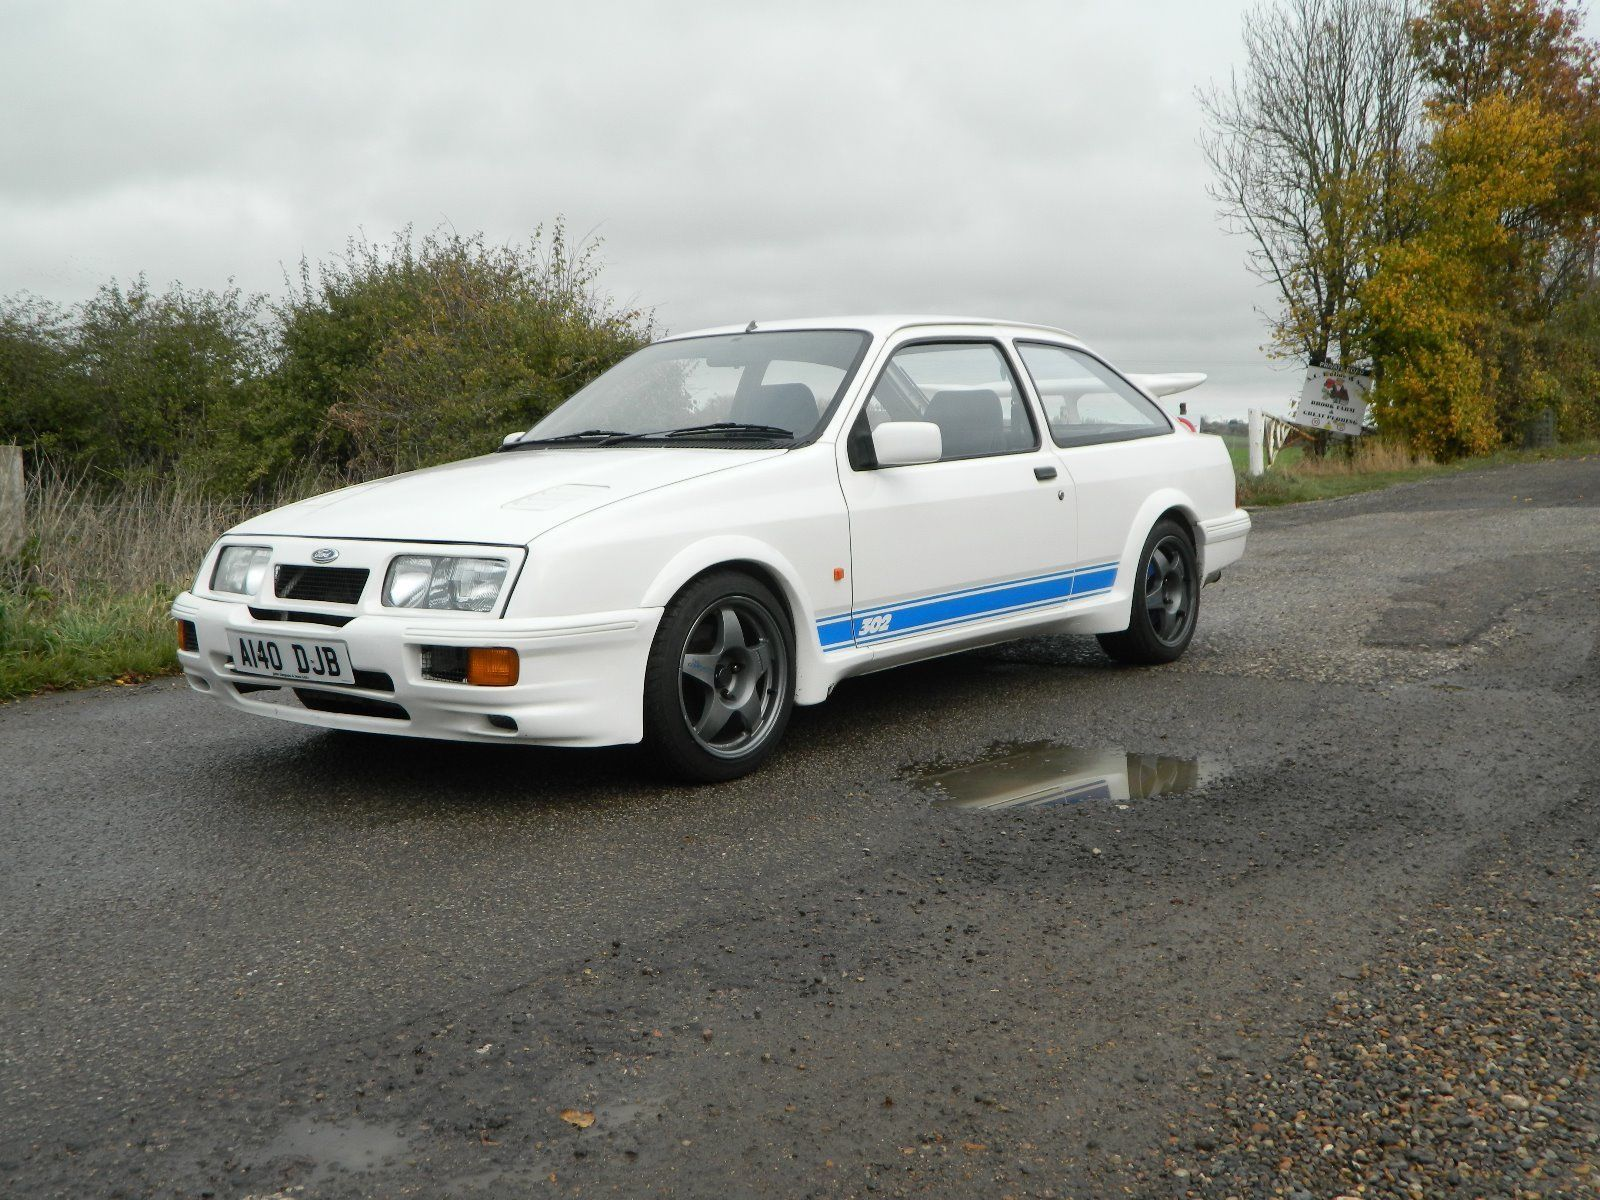 Ford Sierra 302 V8 3door Cosworth 500 Looks And Performance